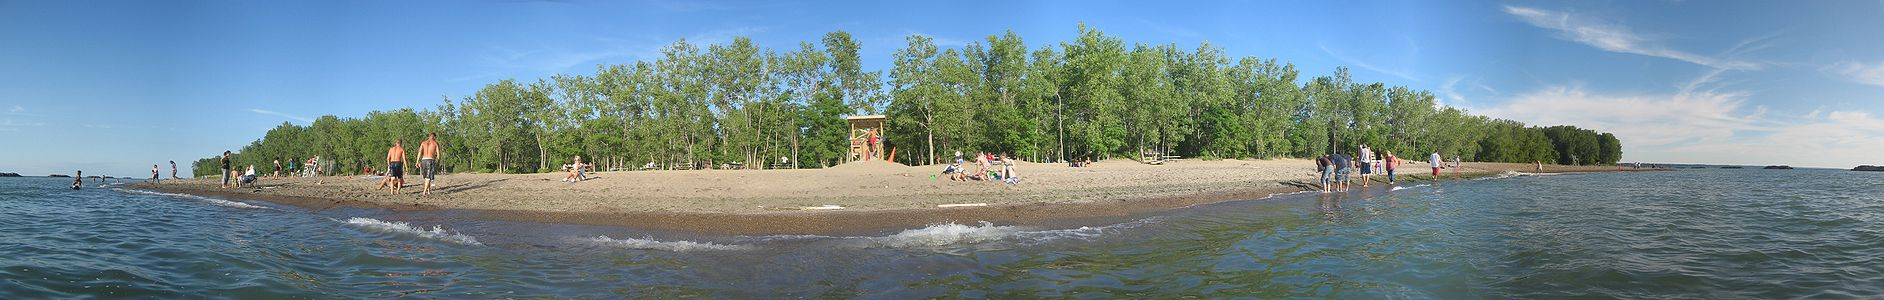 A view of a sunlit beach, that is flanked by green trees, from the water under a mostly clear, blue sky with several vacationers.